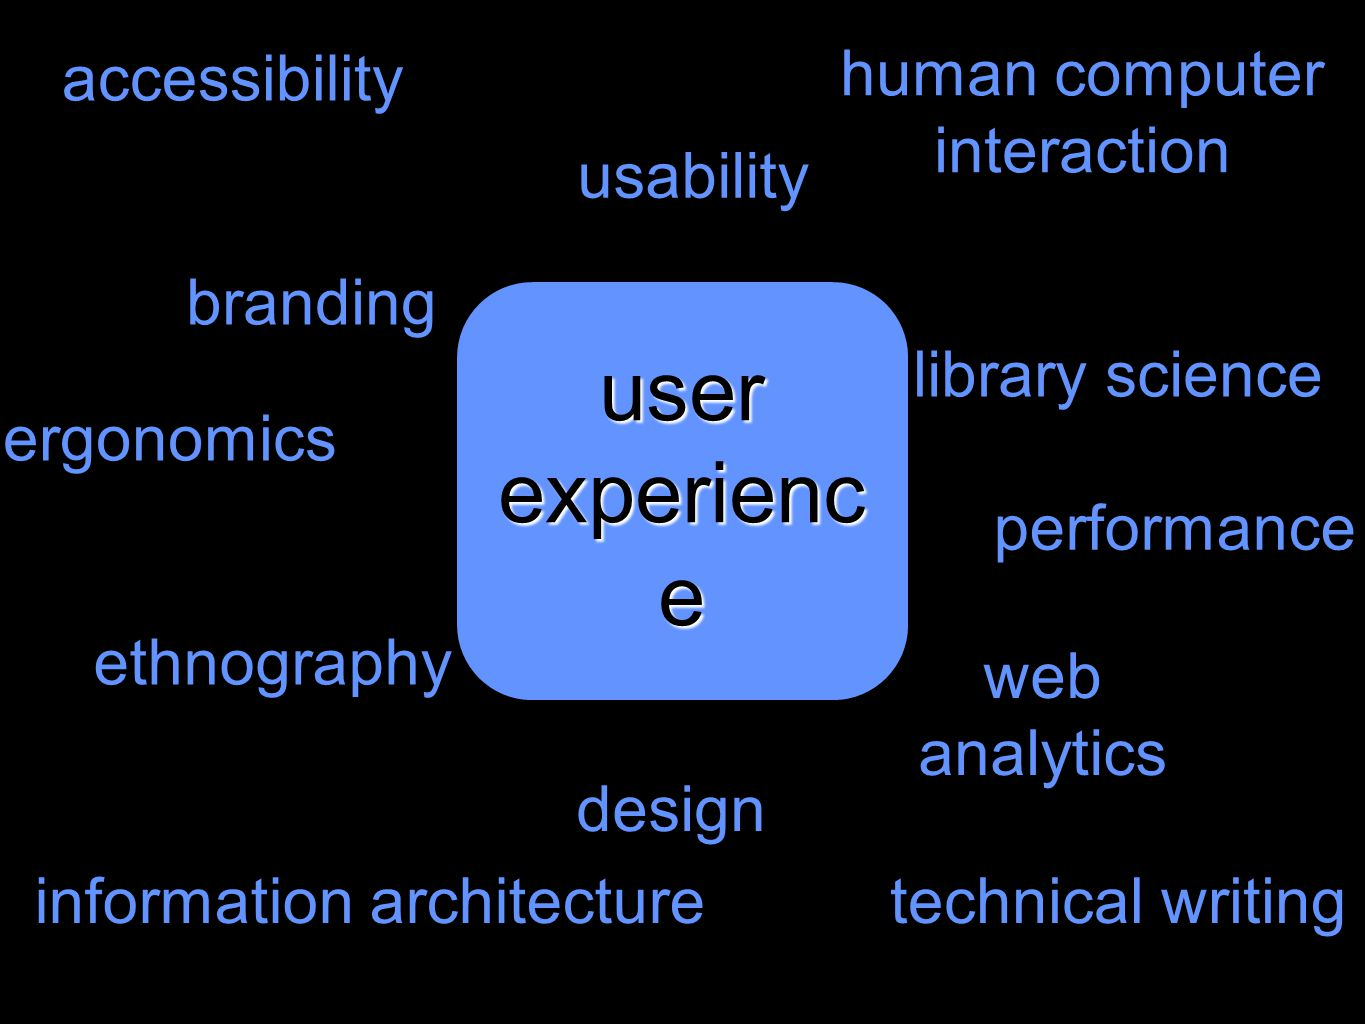 user experienc e library science human computer interaction ergonomics design performance accessibility information architecture branding ethnography